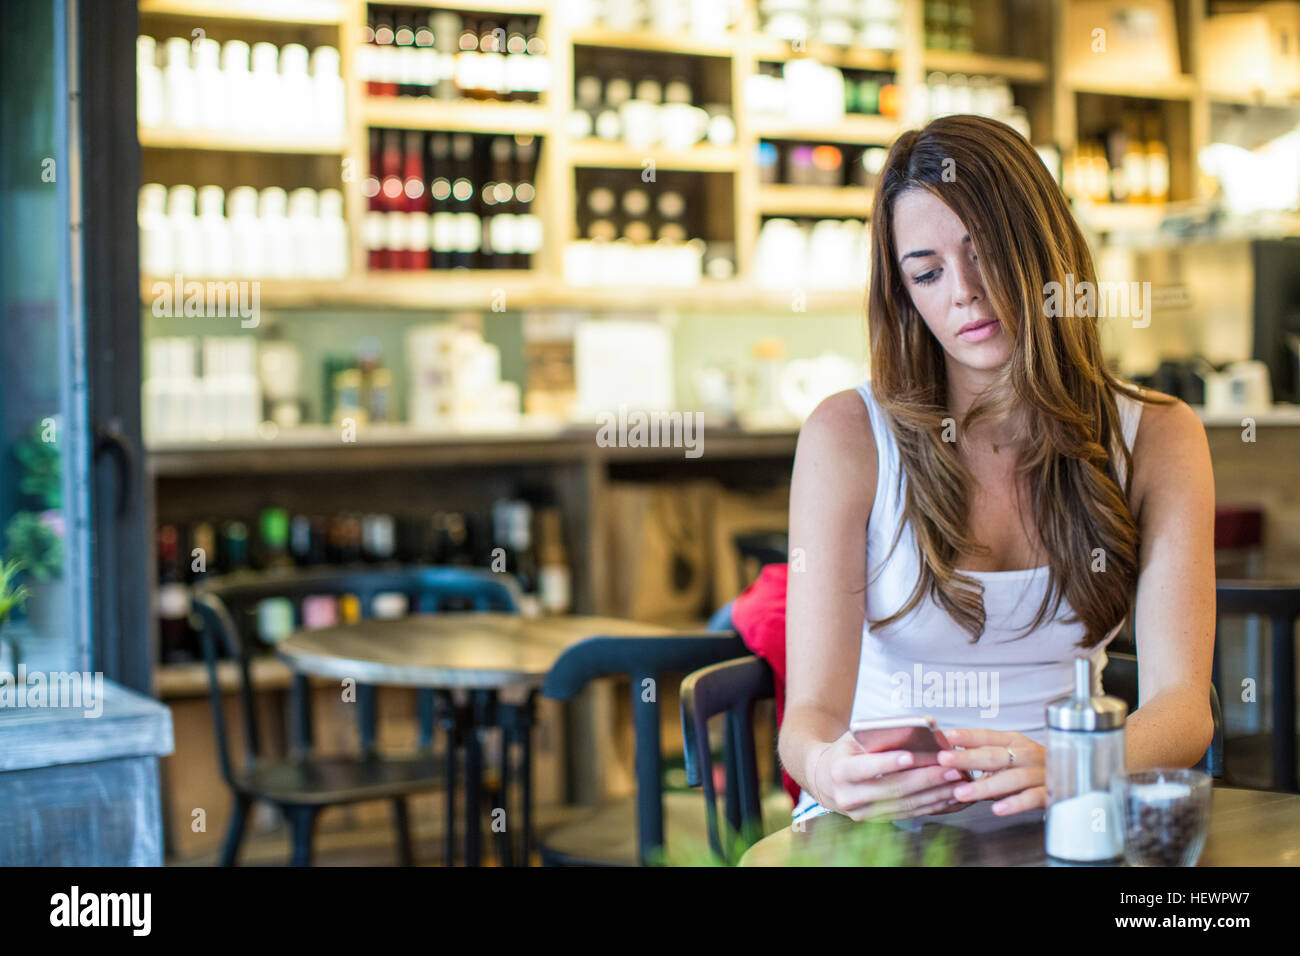 Young woman sitting in cafe reading smartphone texts - Stock Image